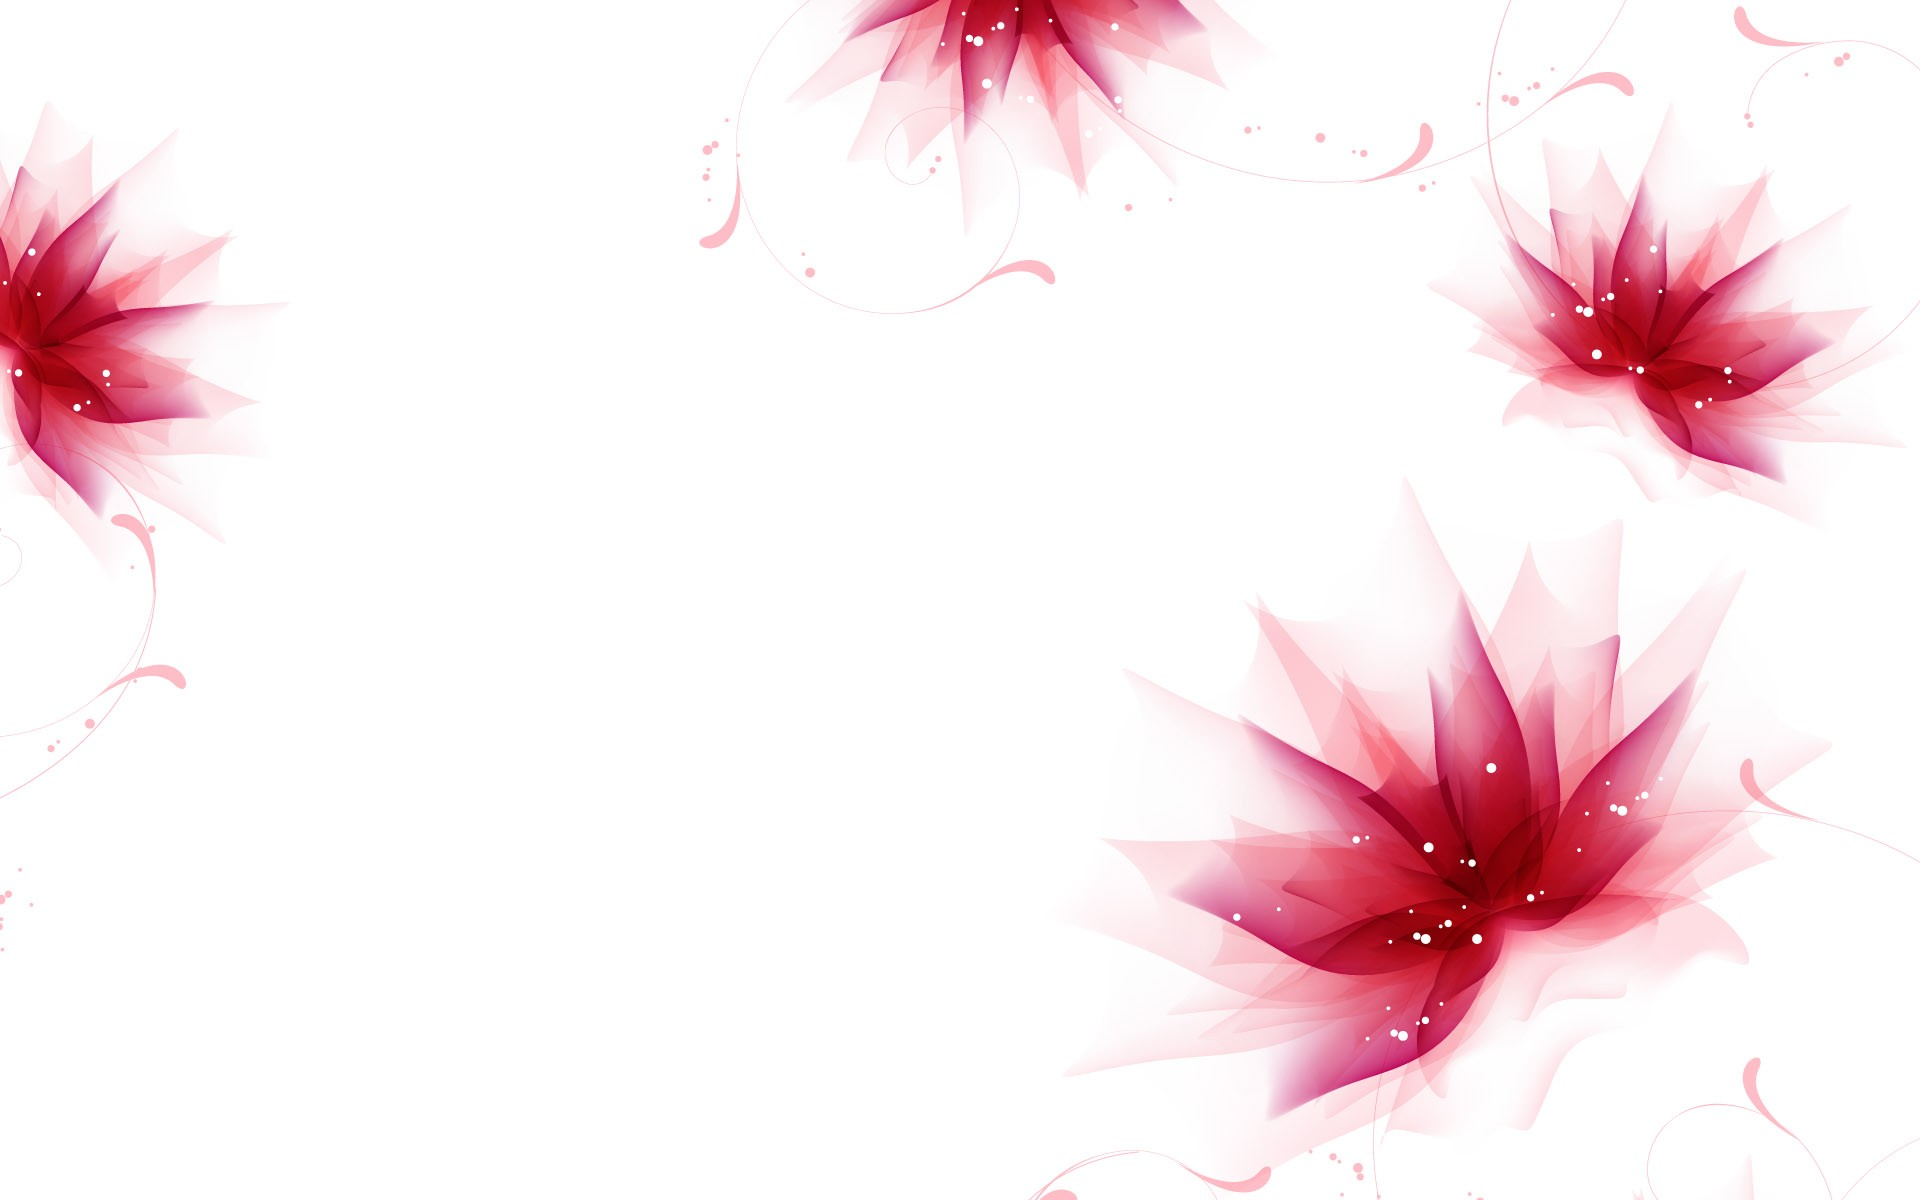 Floral background ·① Download free High Resolution wallpapers for ...